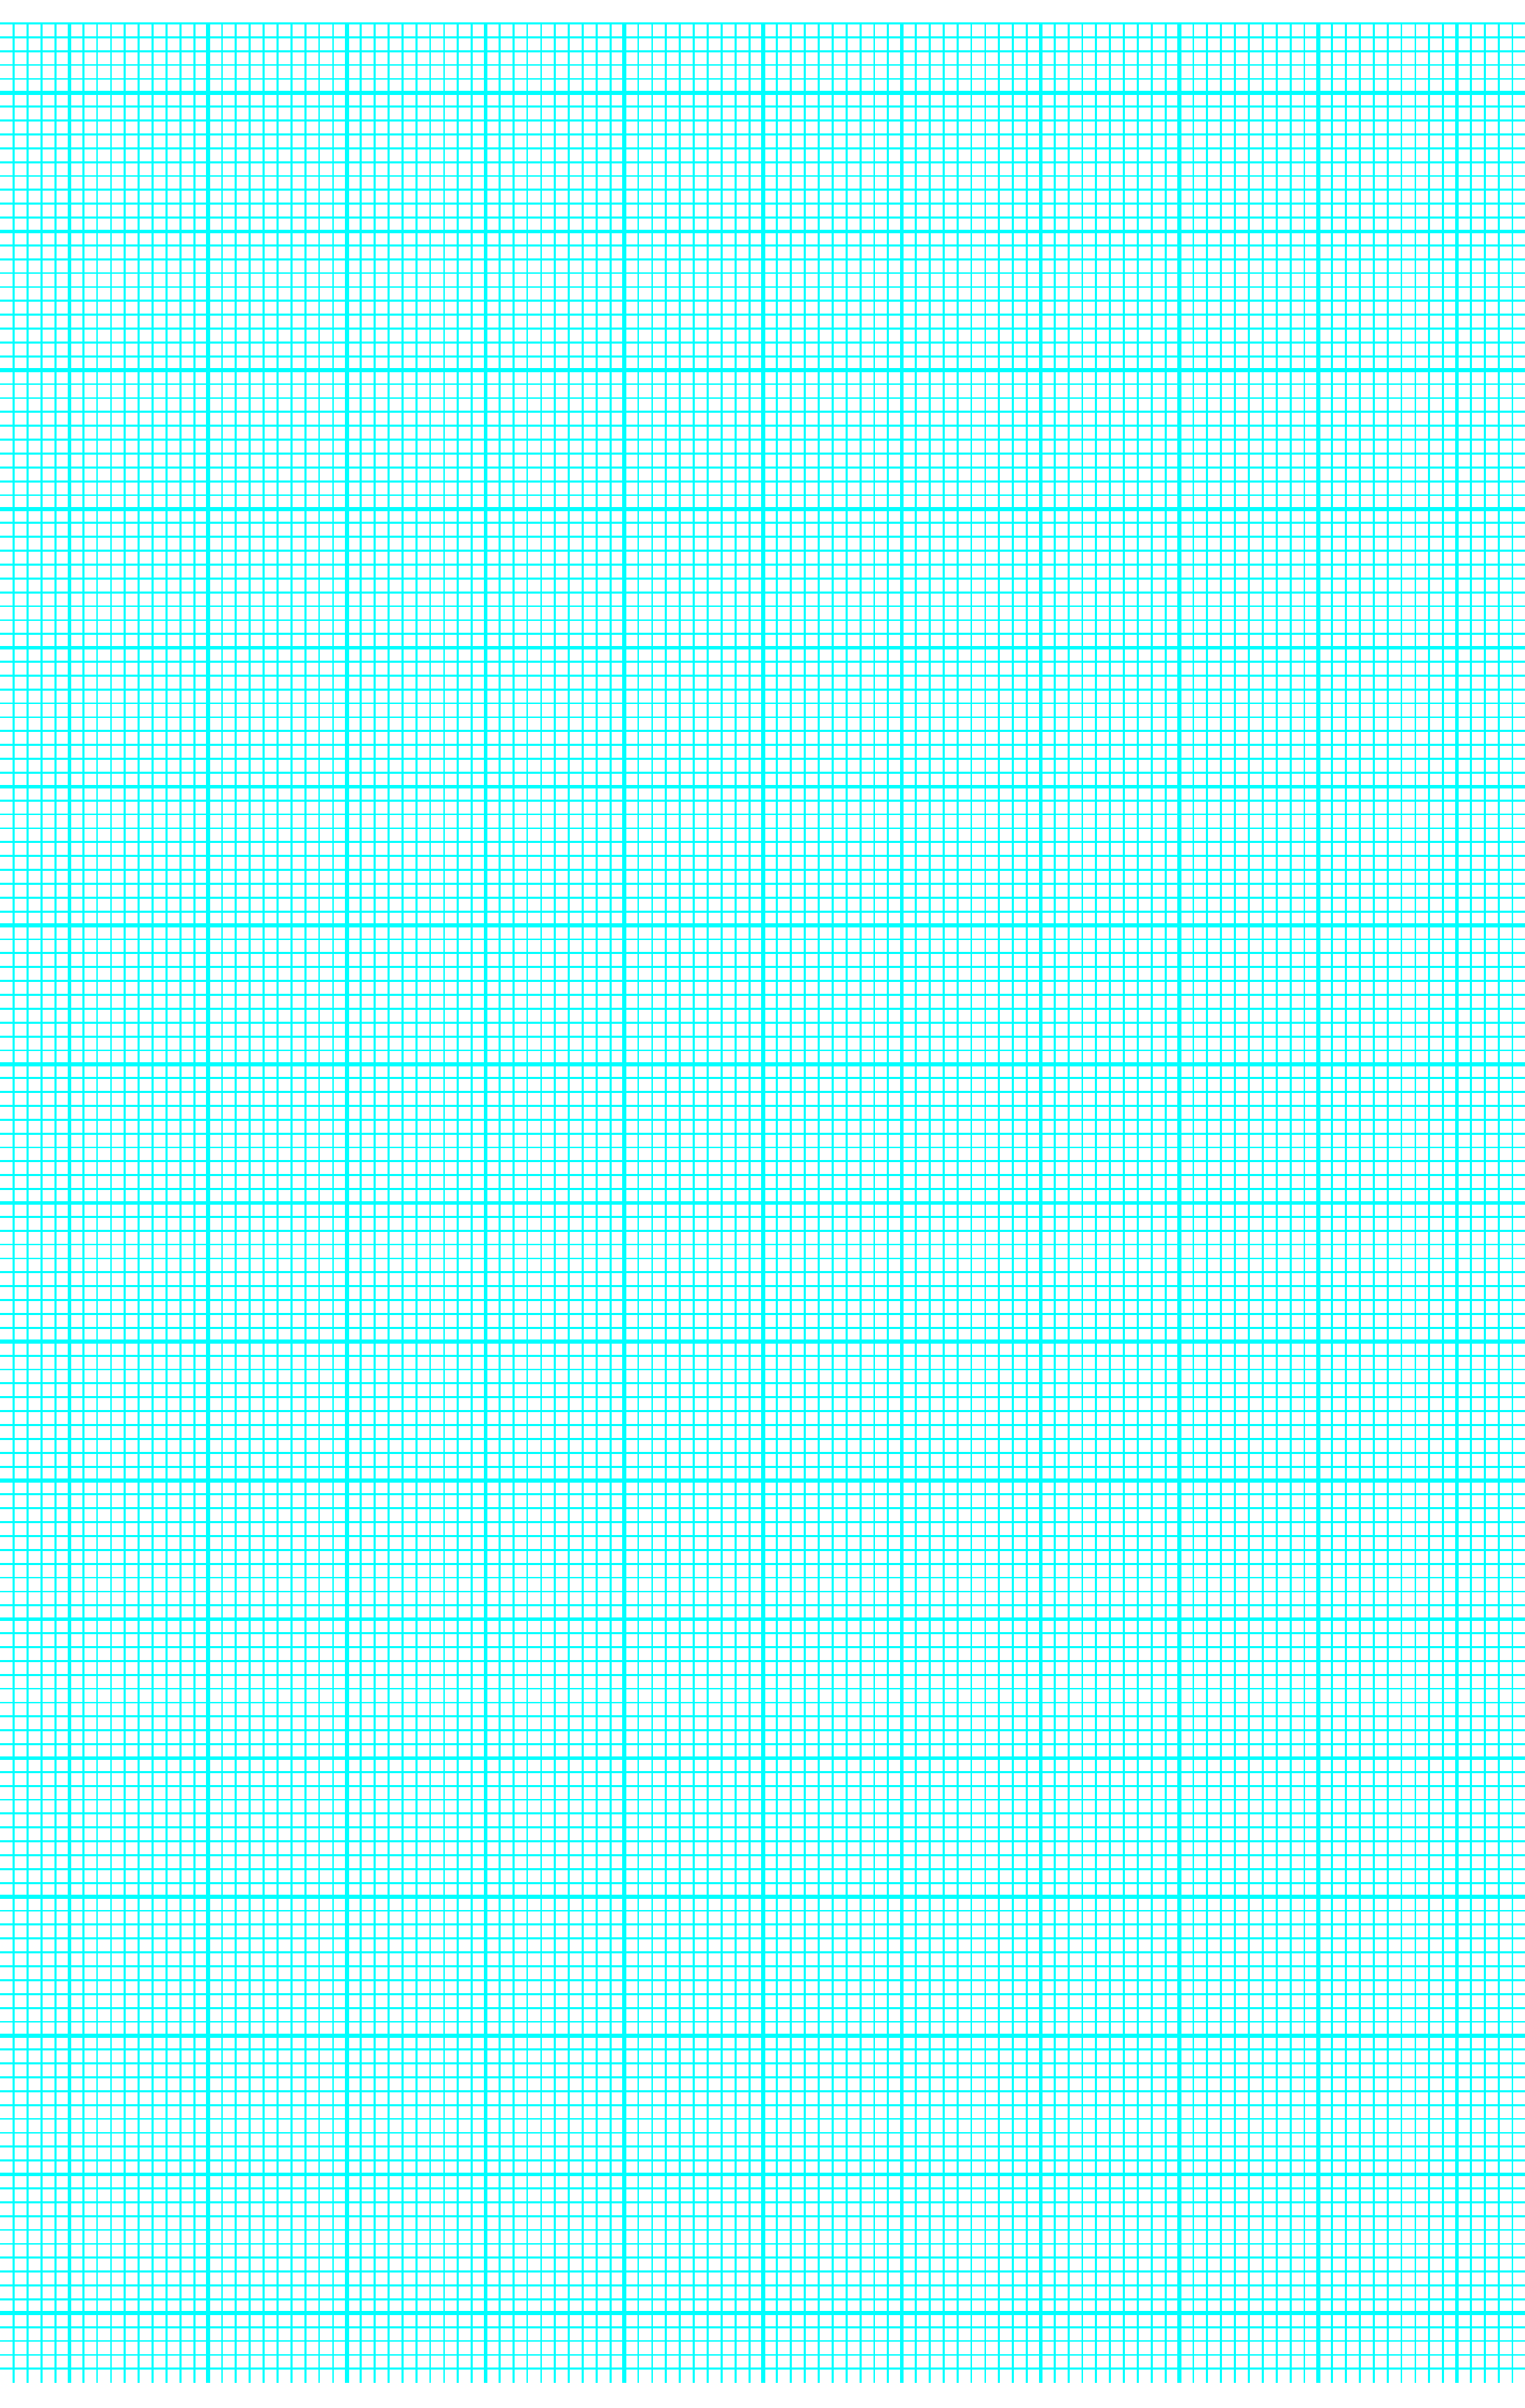 10 lines per inch graph paper on ledger